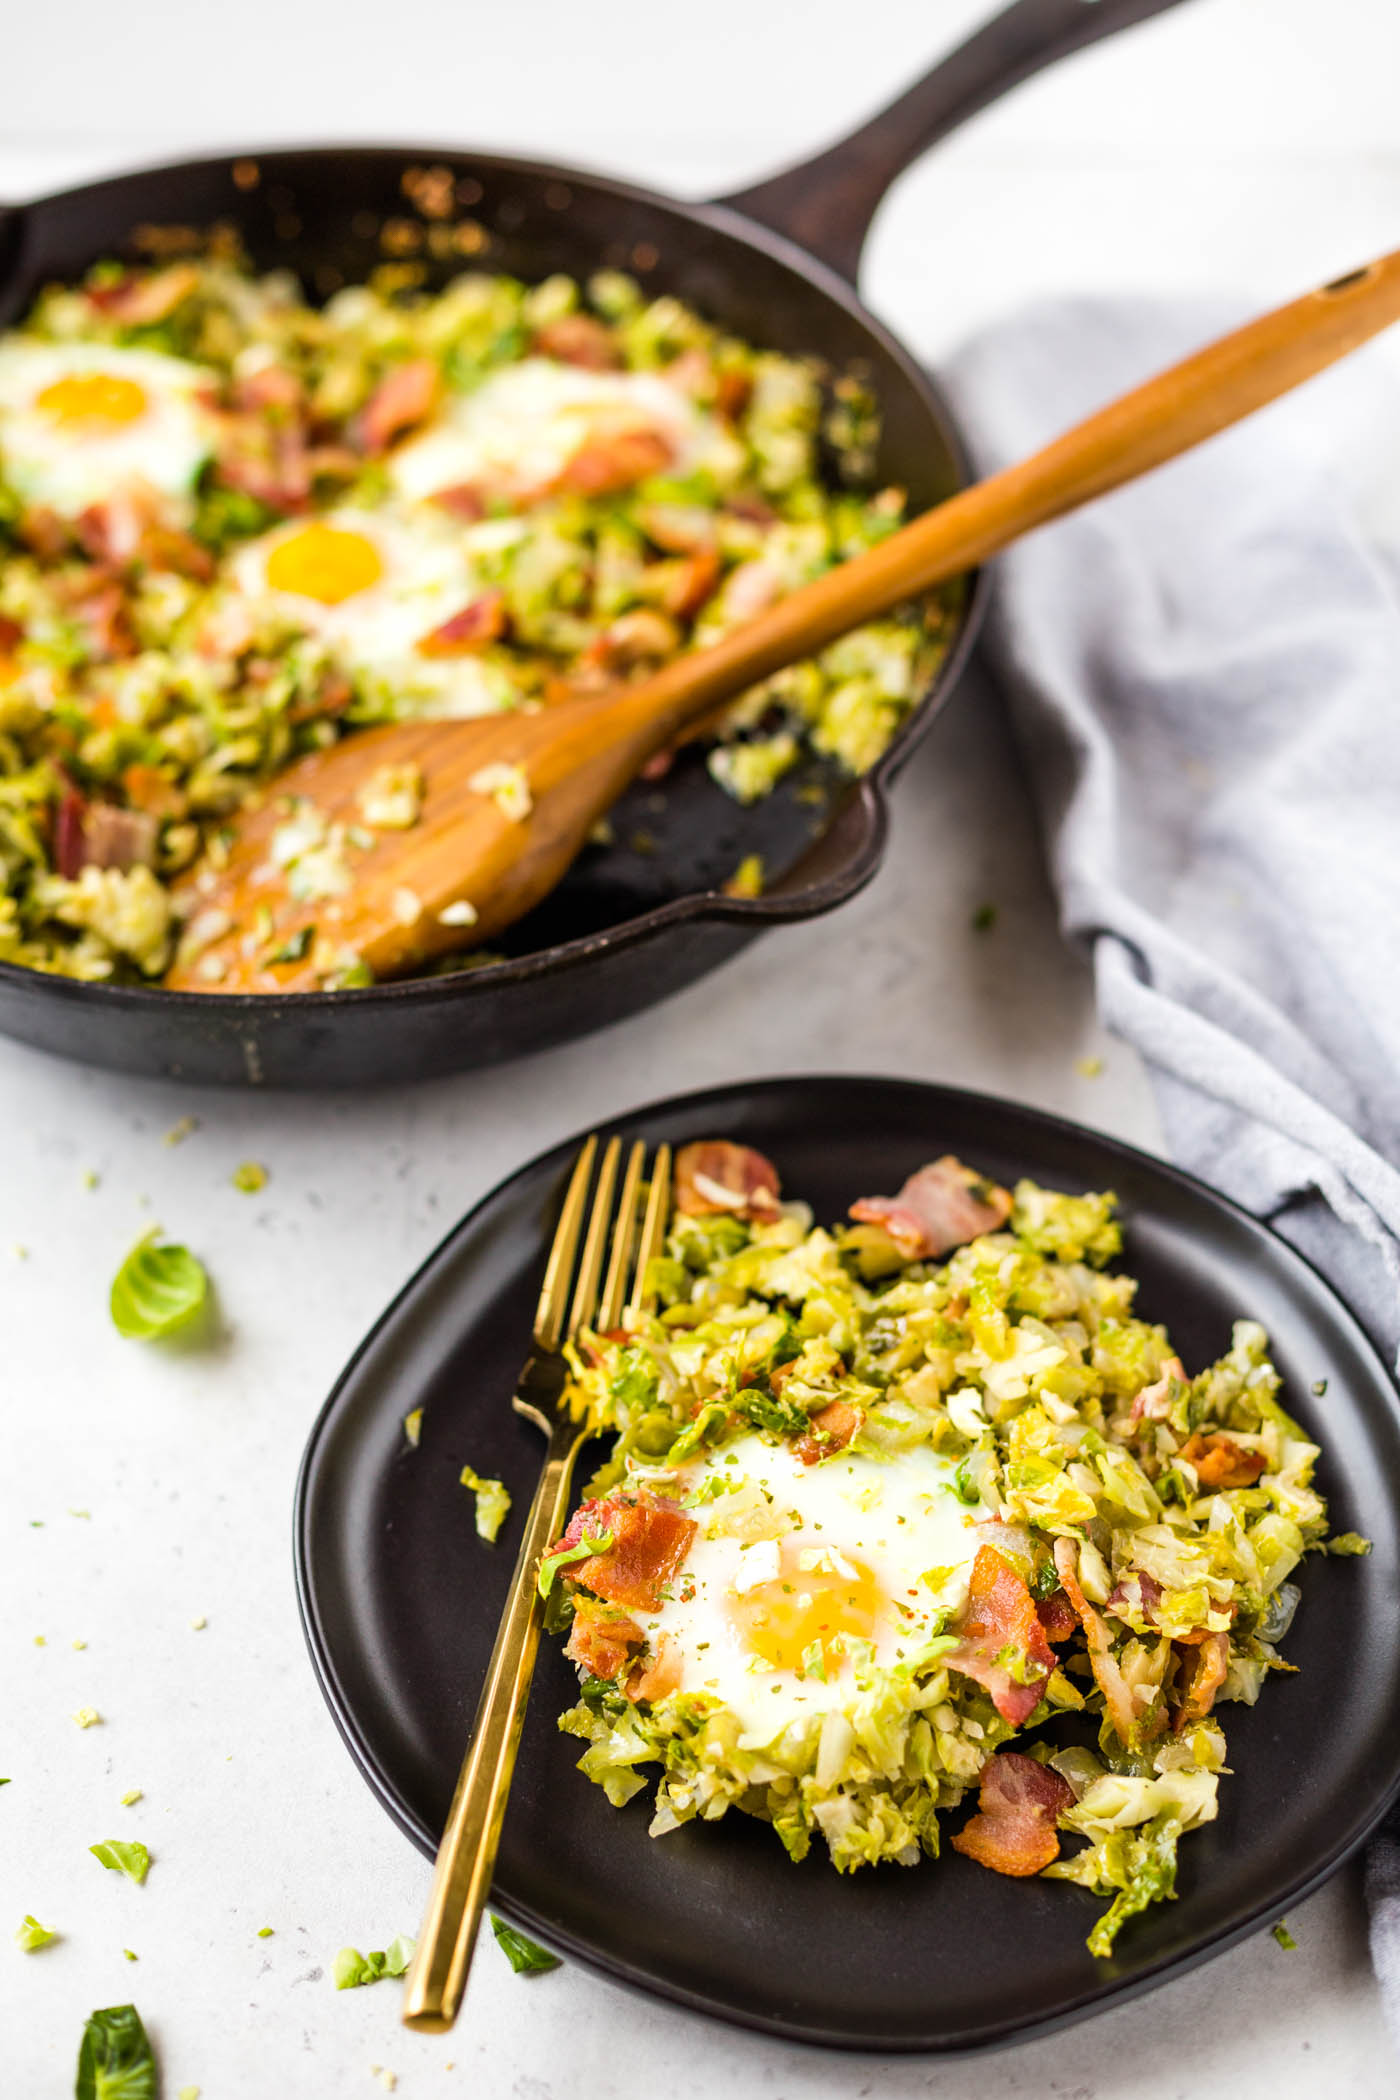 brussels sprouts, bacon, and egg hash on black plate and cast iron skillet